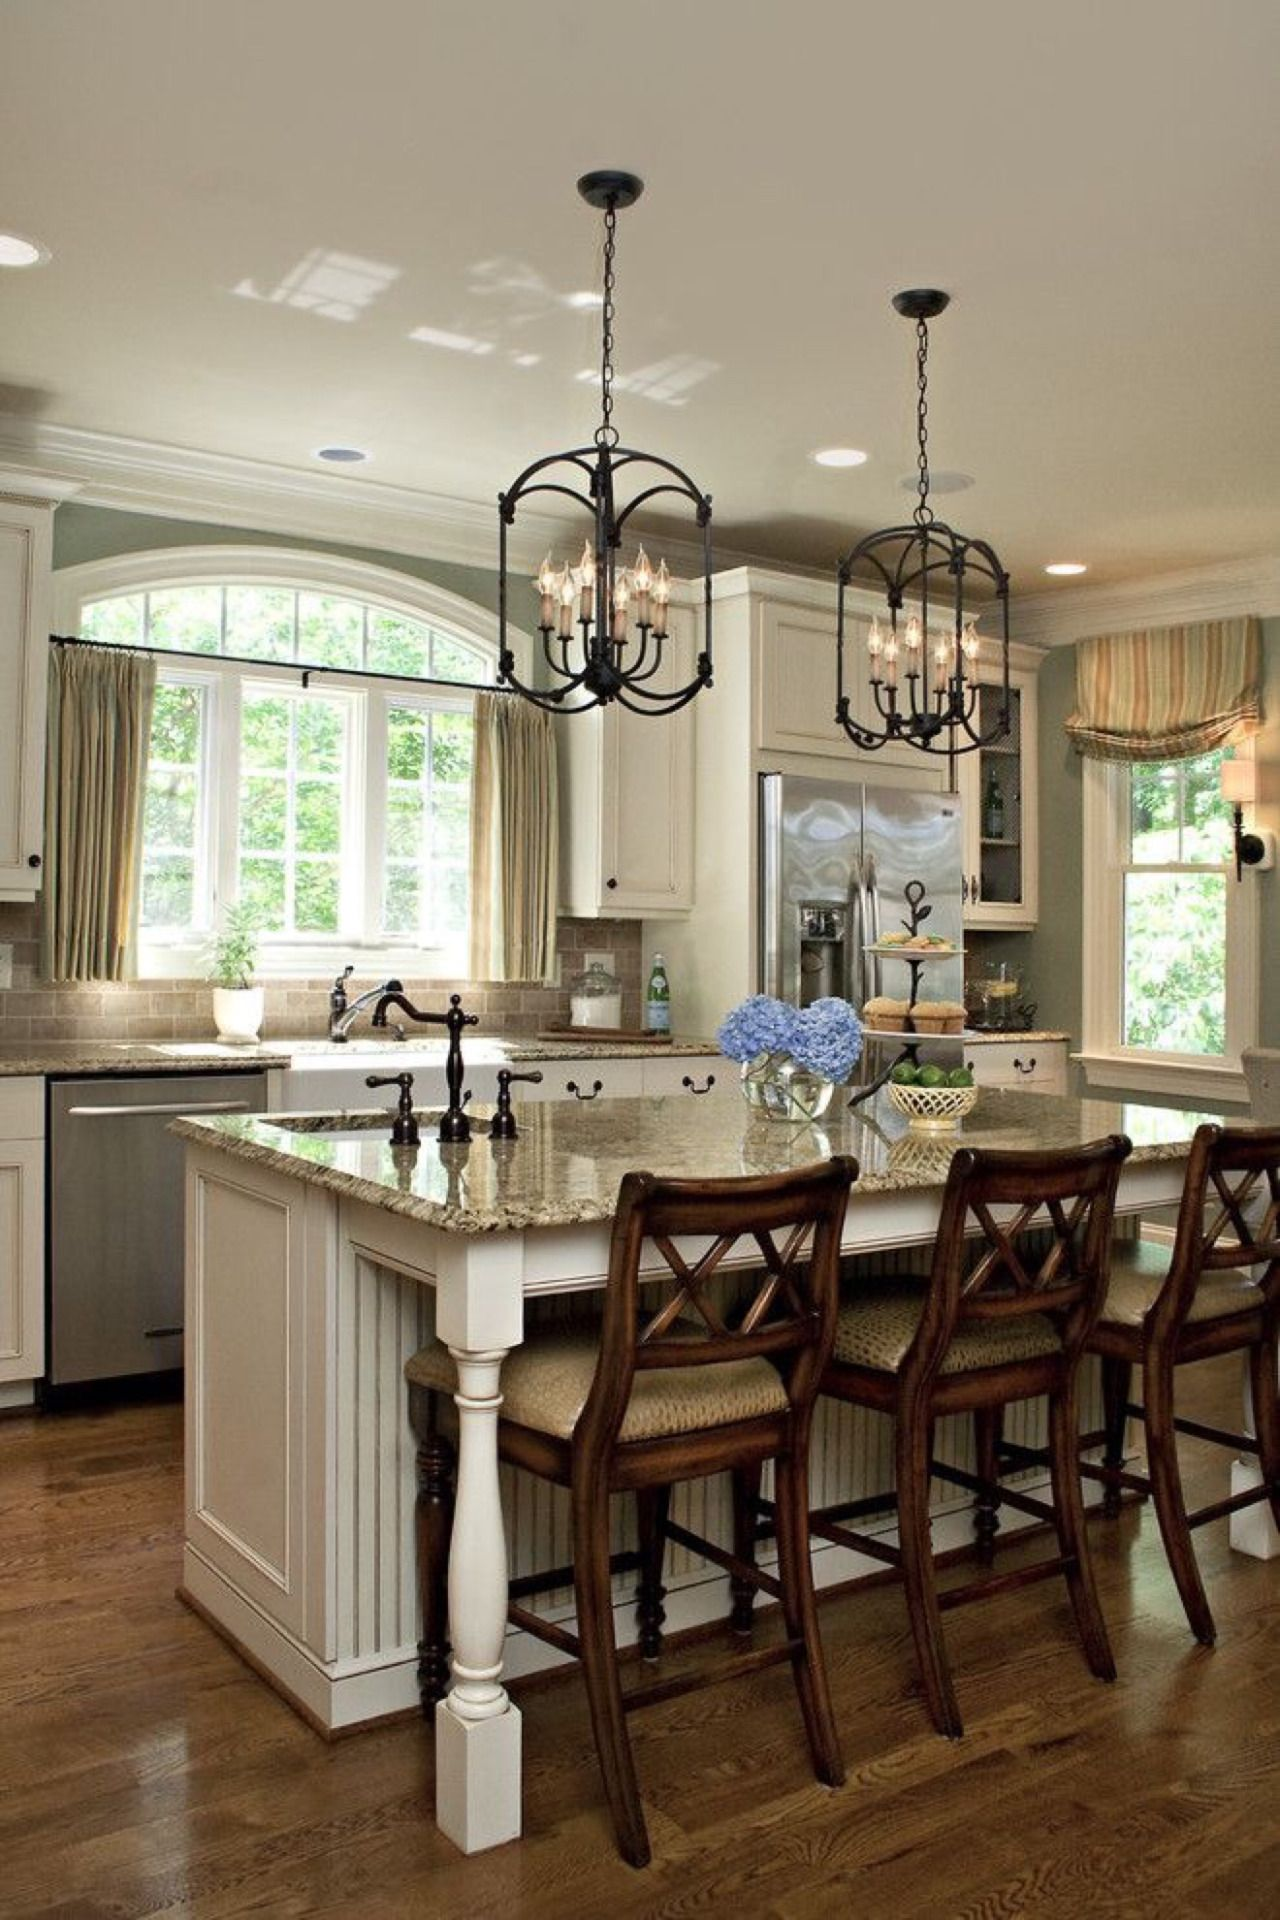 Pin by griselda on deco varios pinterest kitchens lights and